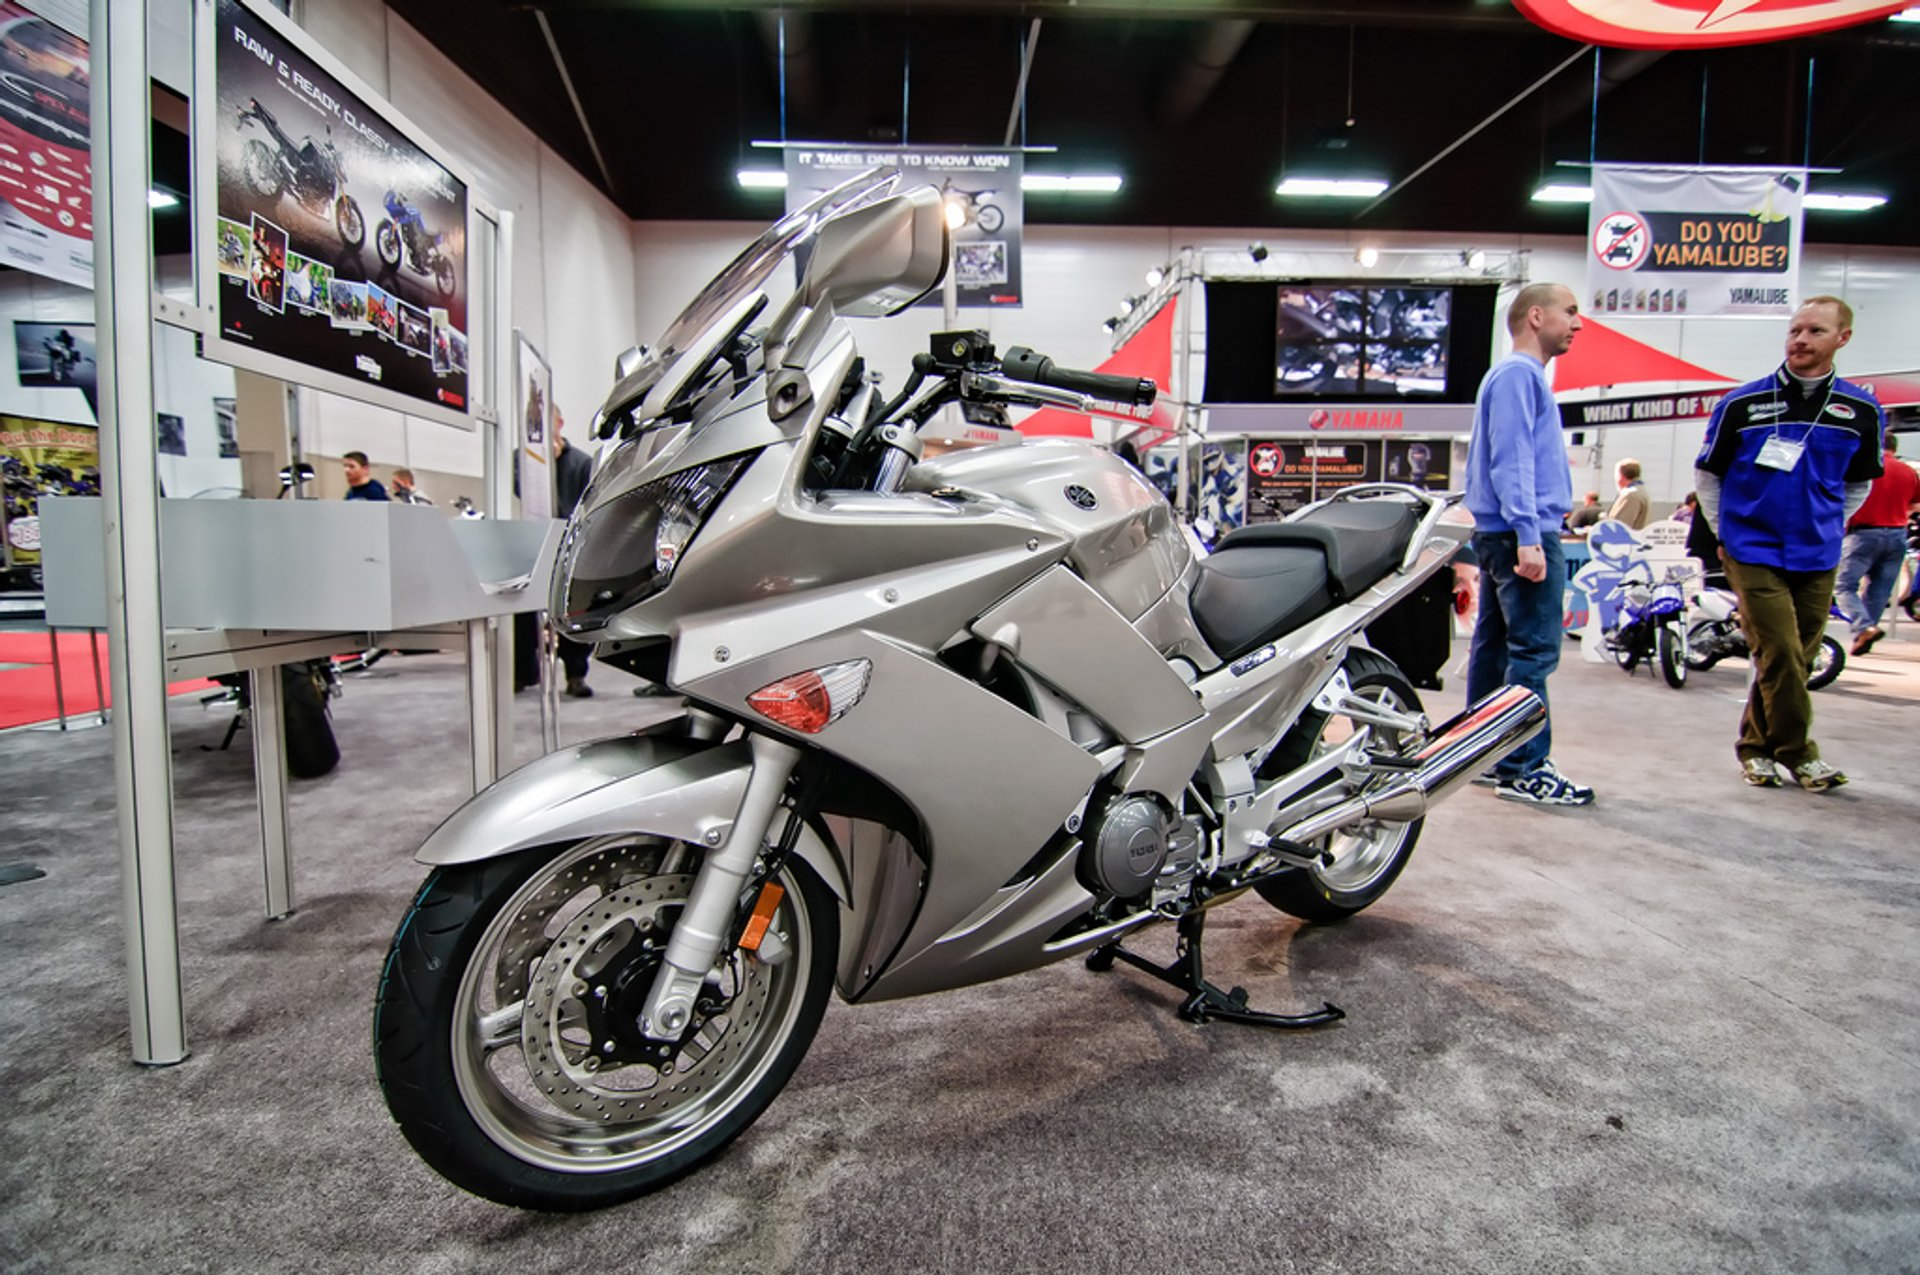 Edmonton Motorcycle Show in Edmonton - Best Season 2020